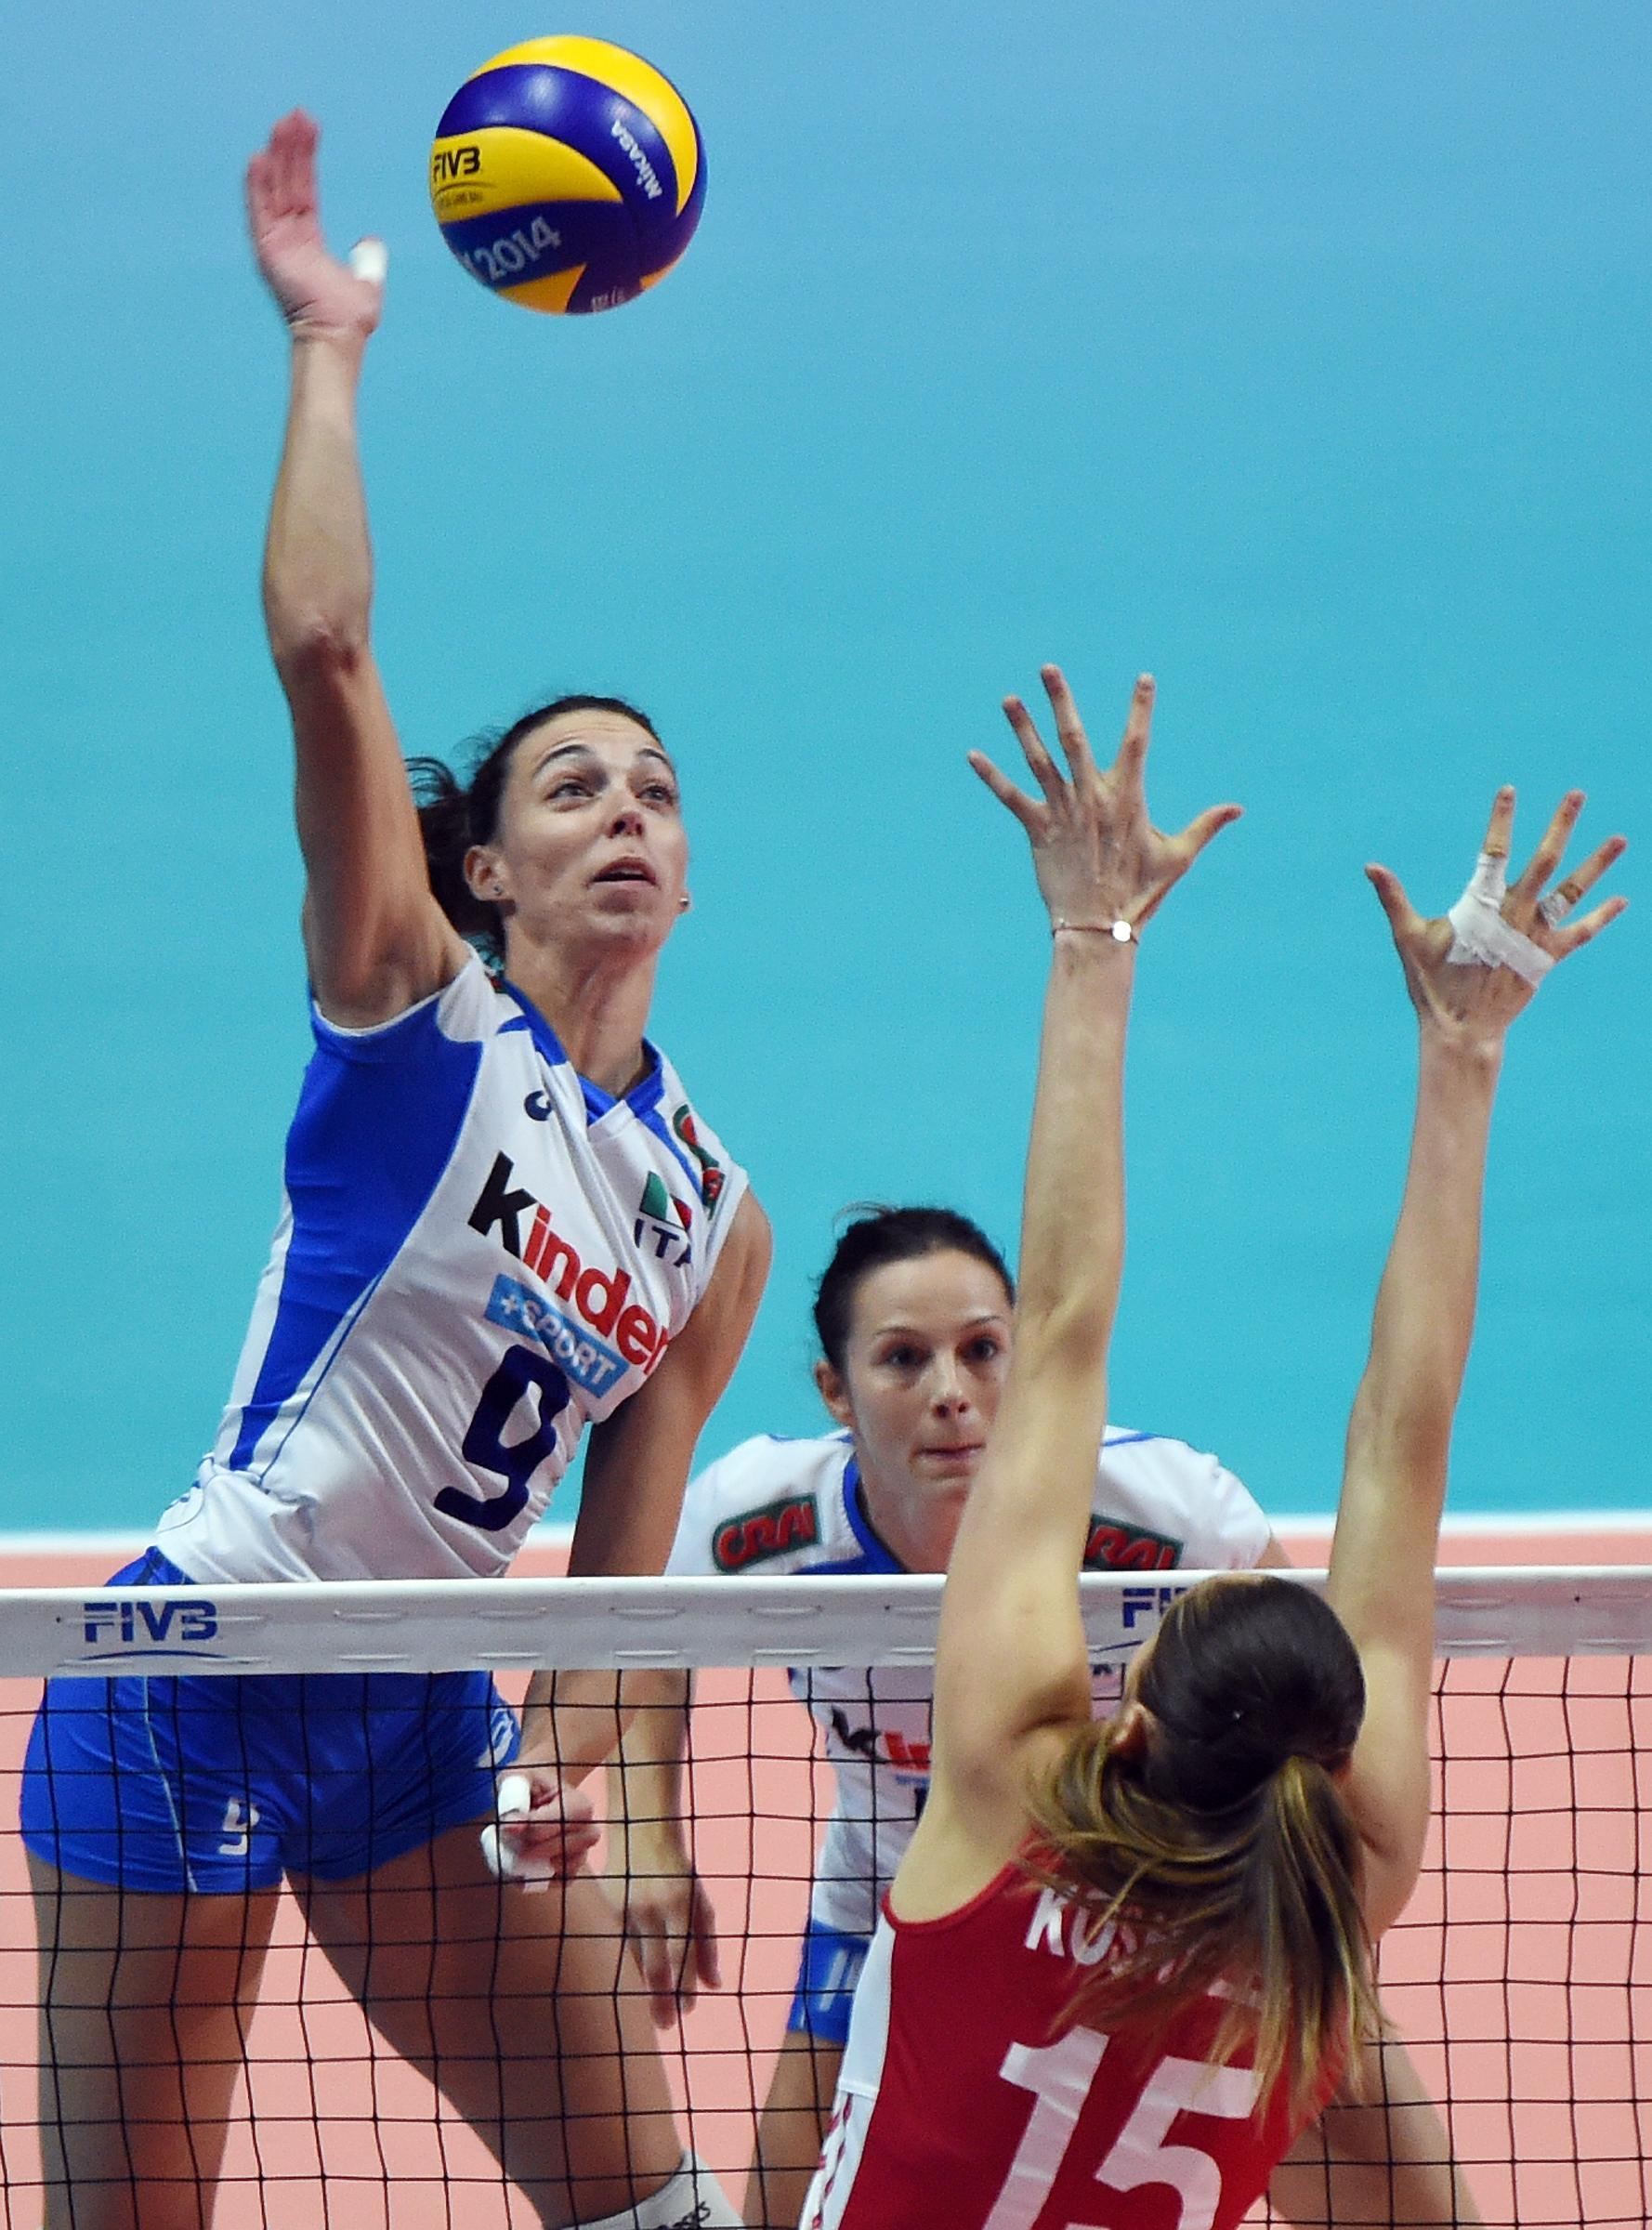 italia russia volley femminile oggi - photo #9